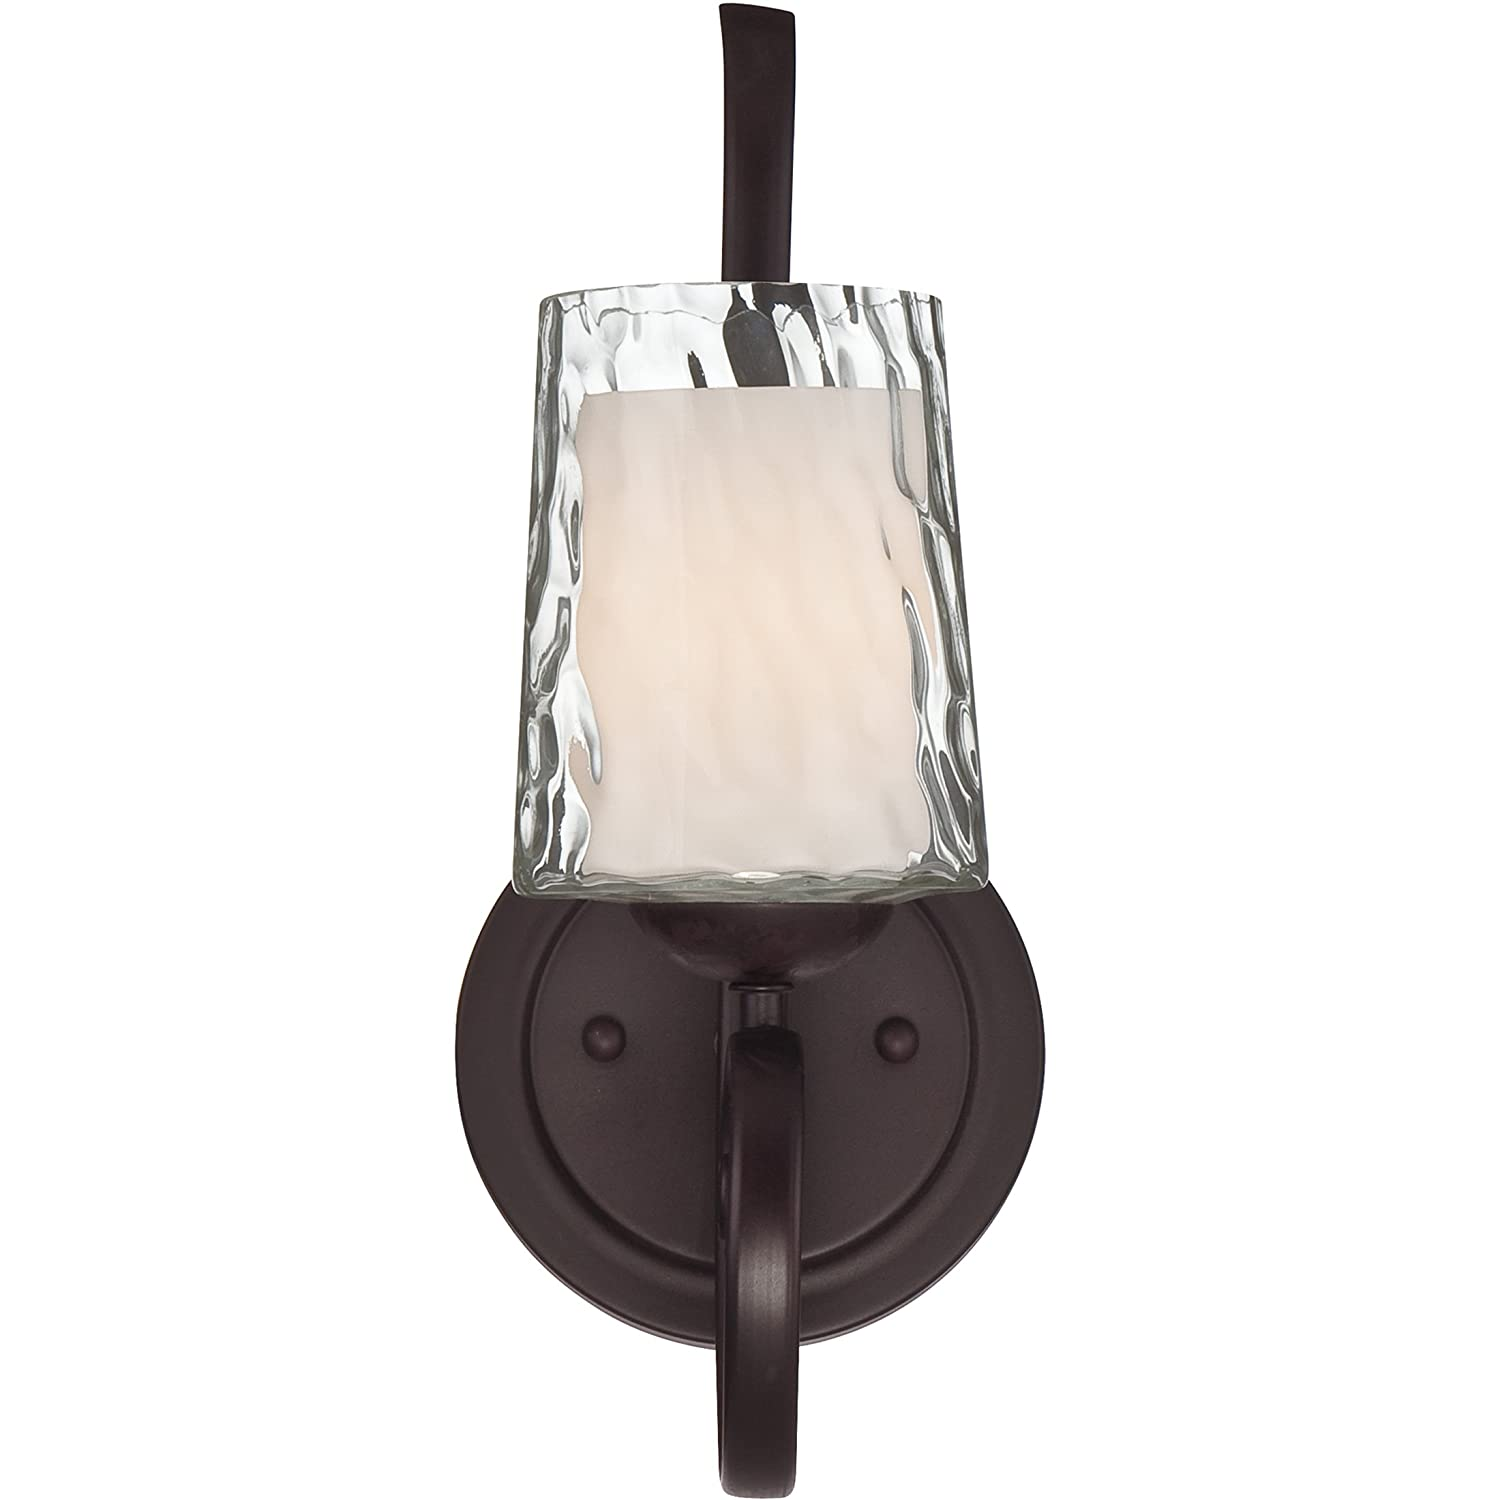 Forte Lighting 114824 2214-05-17Chandelier with Gold Dust Glass Shades 28 x 23 x 28 Chestnut